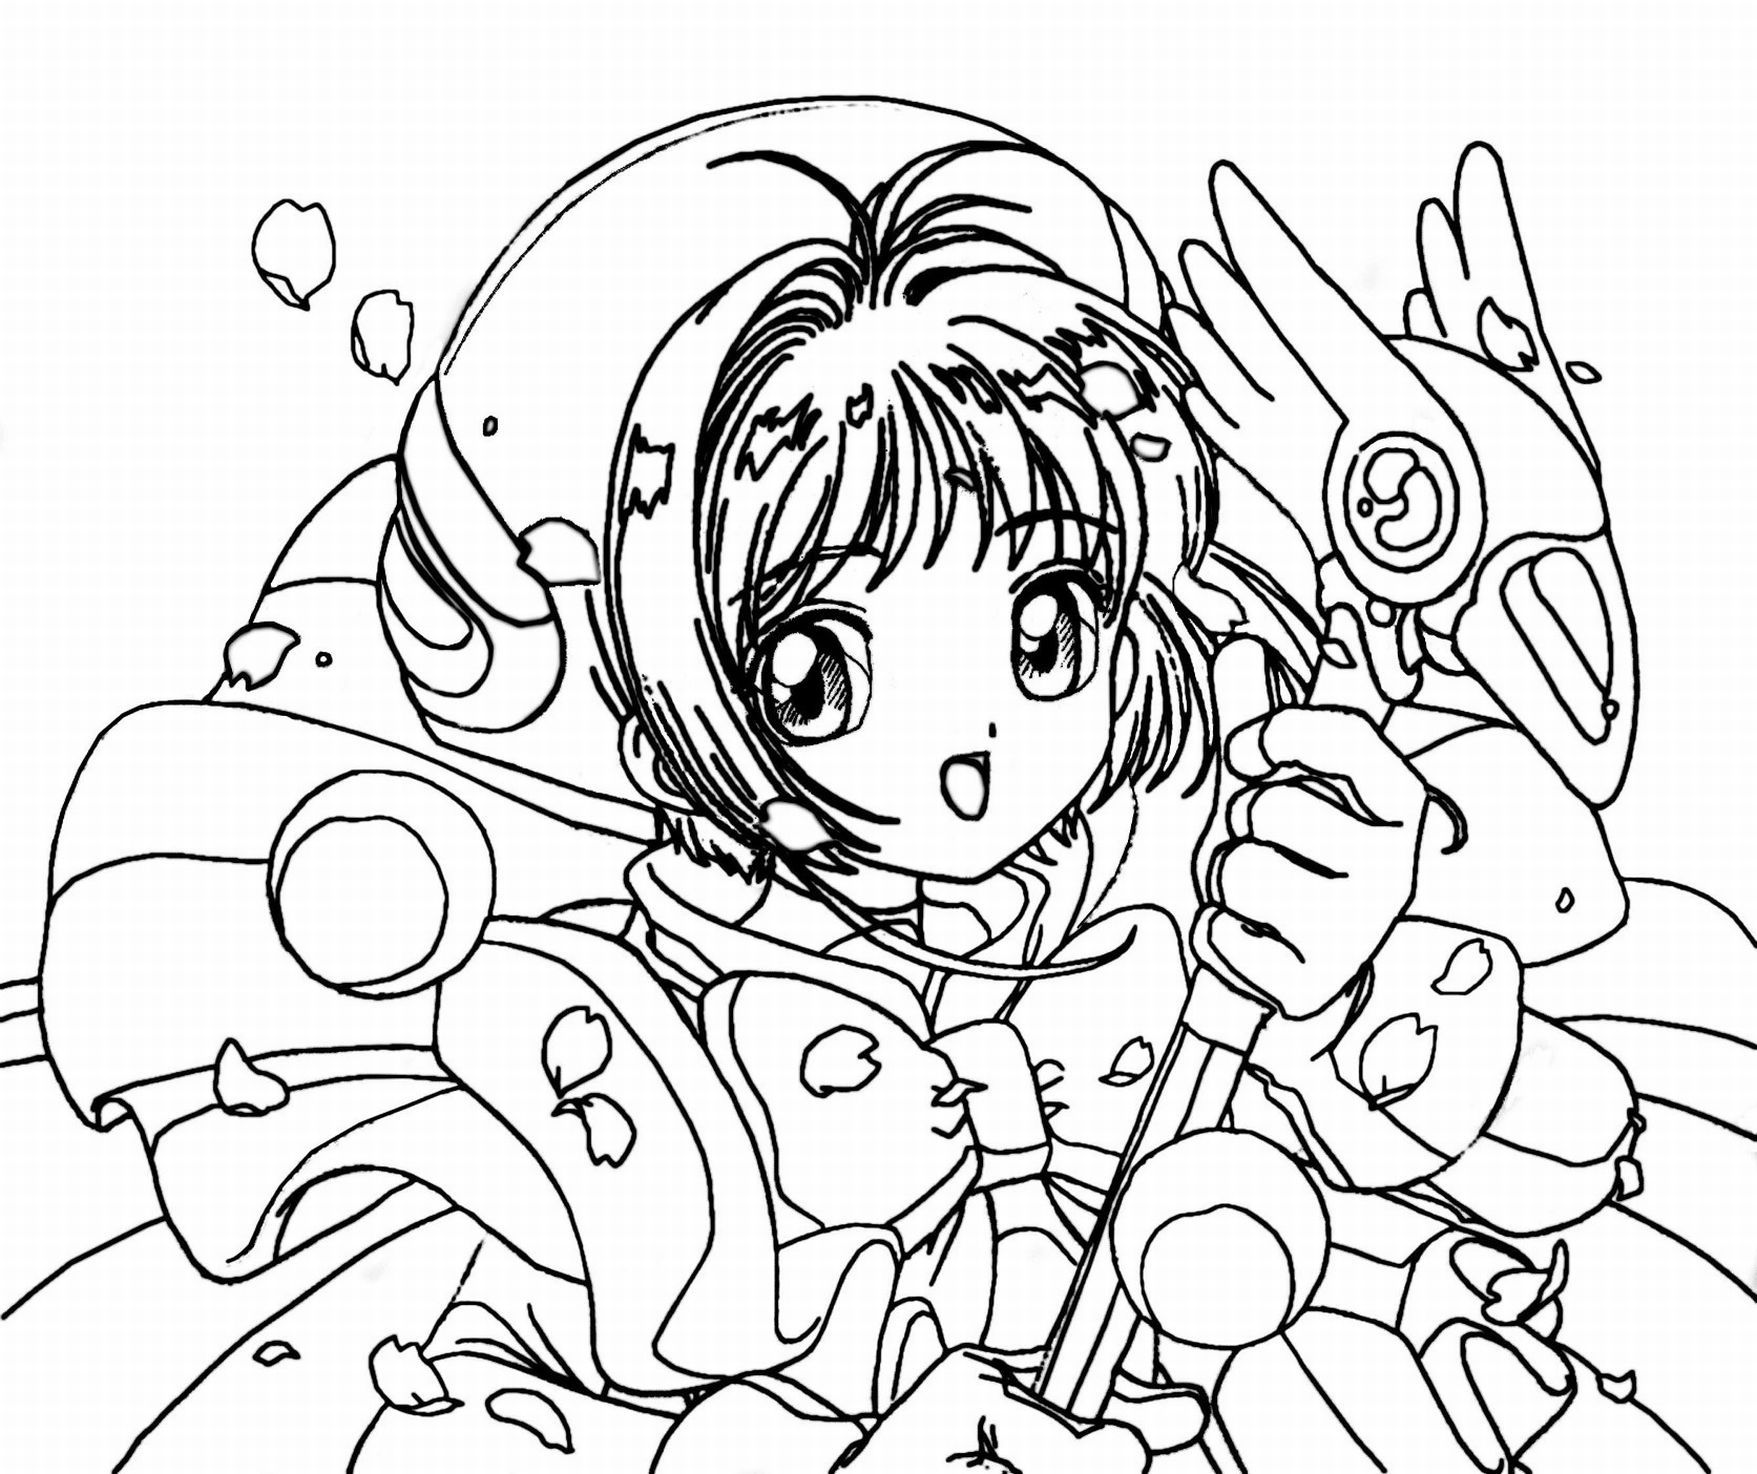 Cute Anime Coloring Pages Printables Colouring Sheets - anime coloring pages